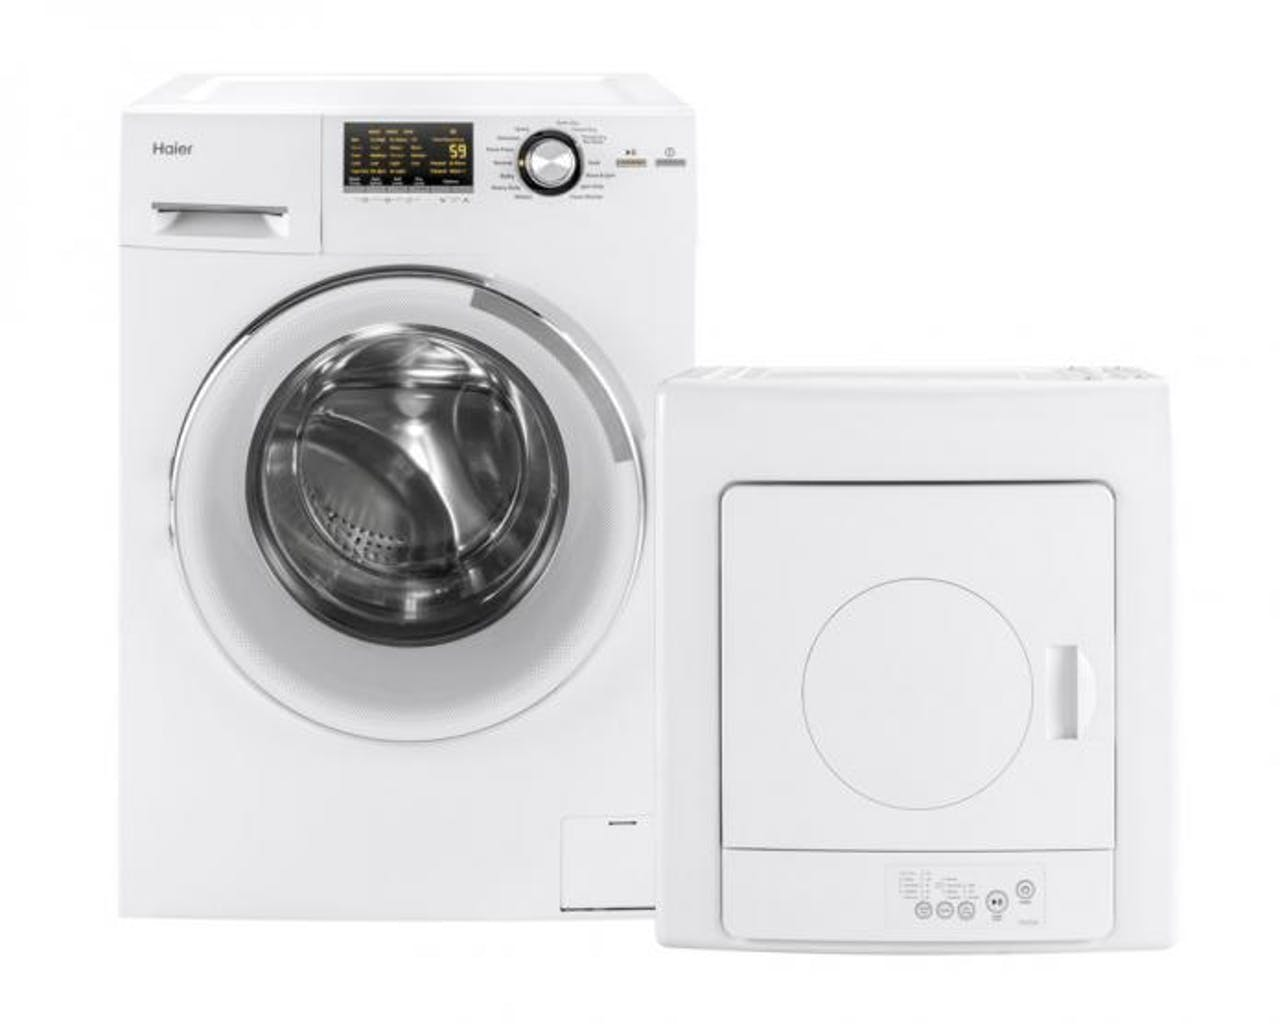 Product support photo of a Haier washer dryer combo and portable electric dryer